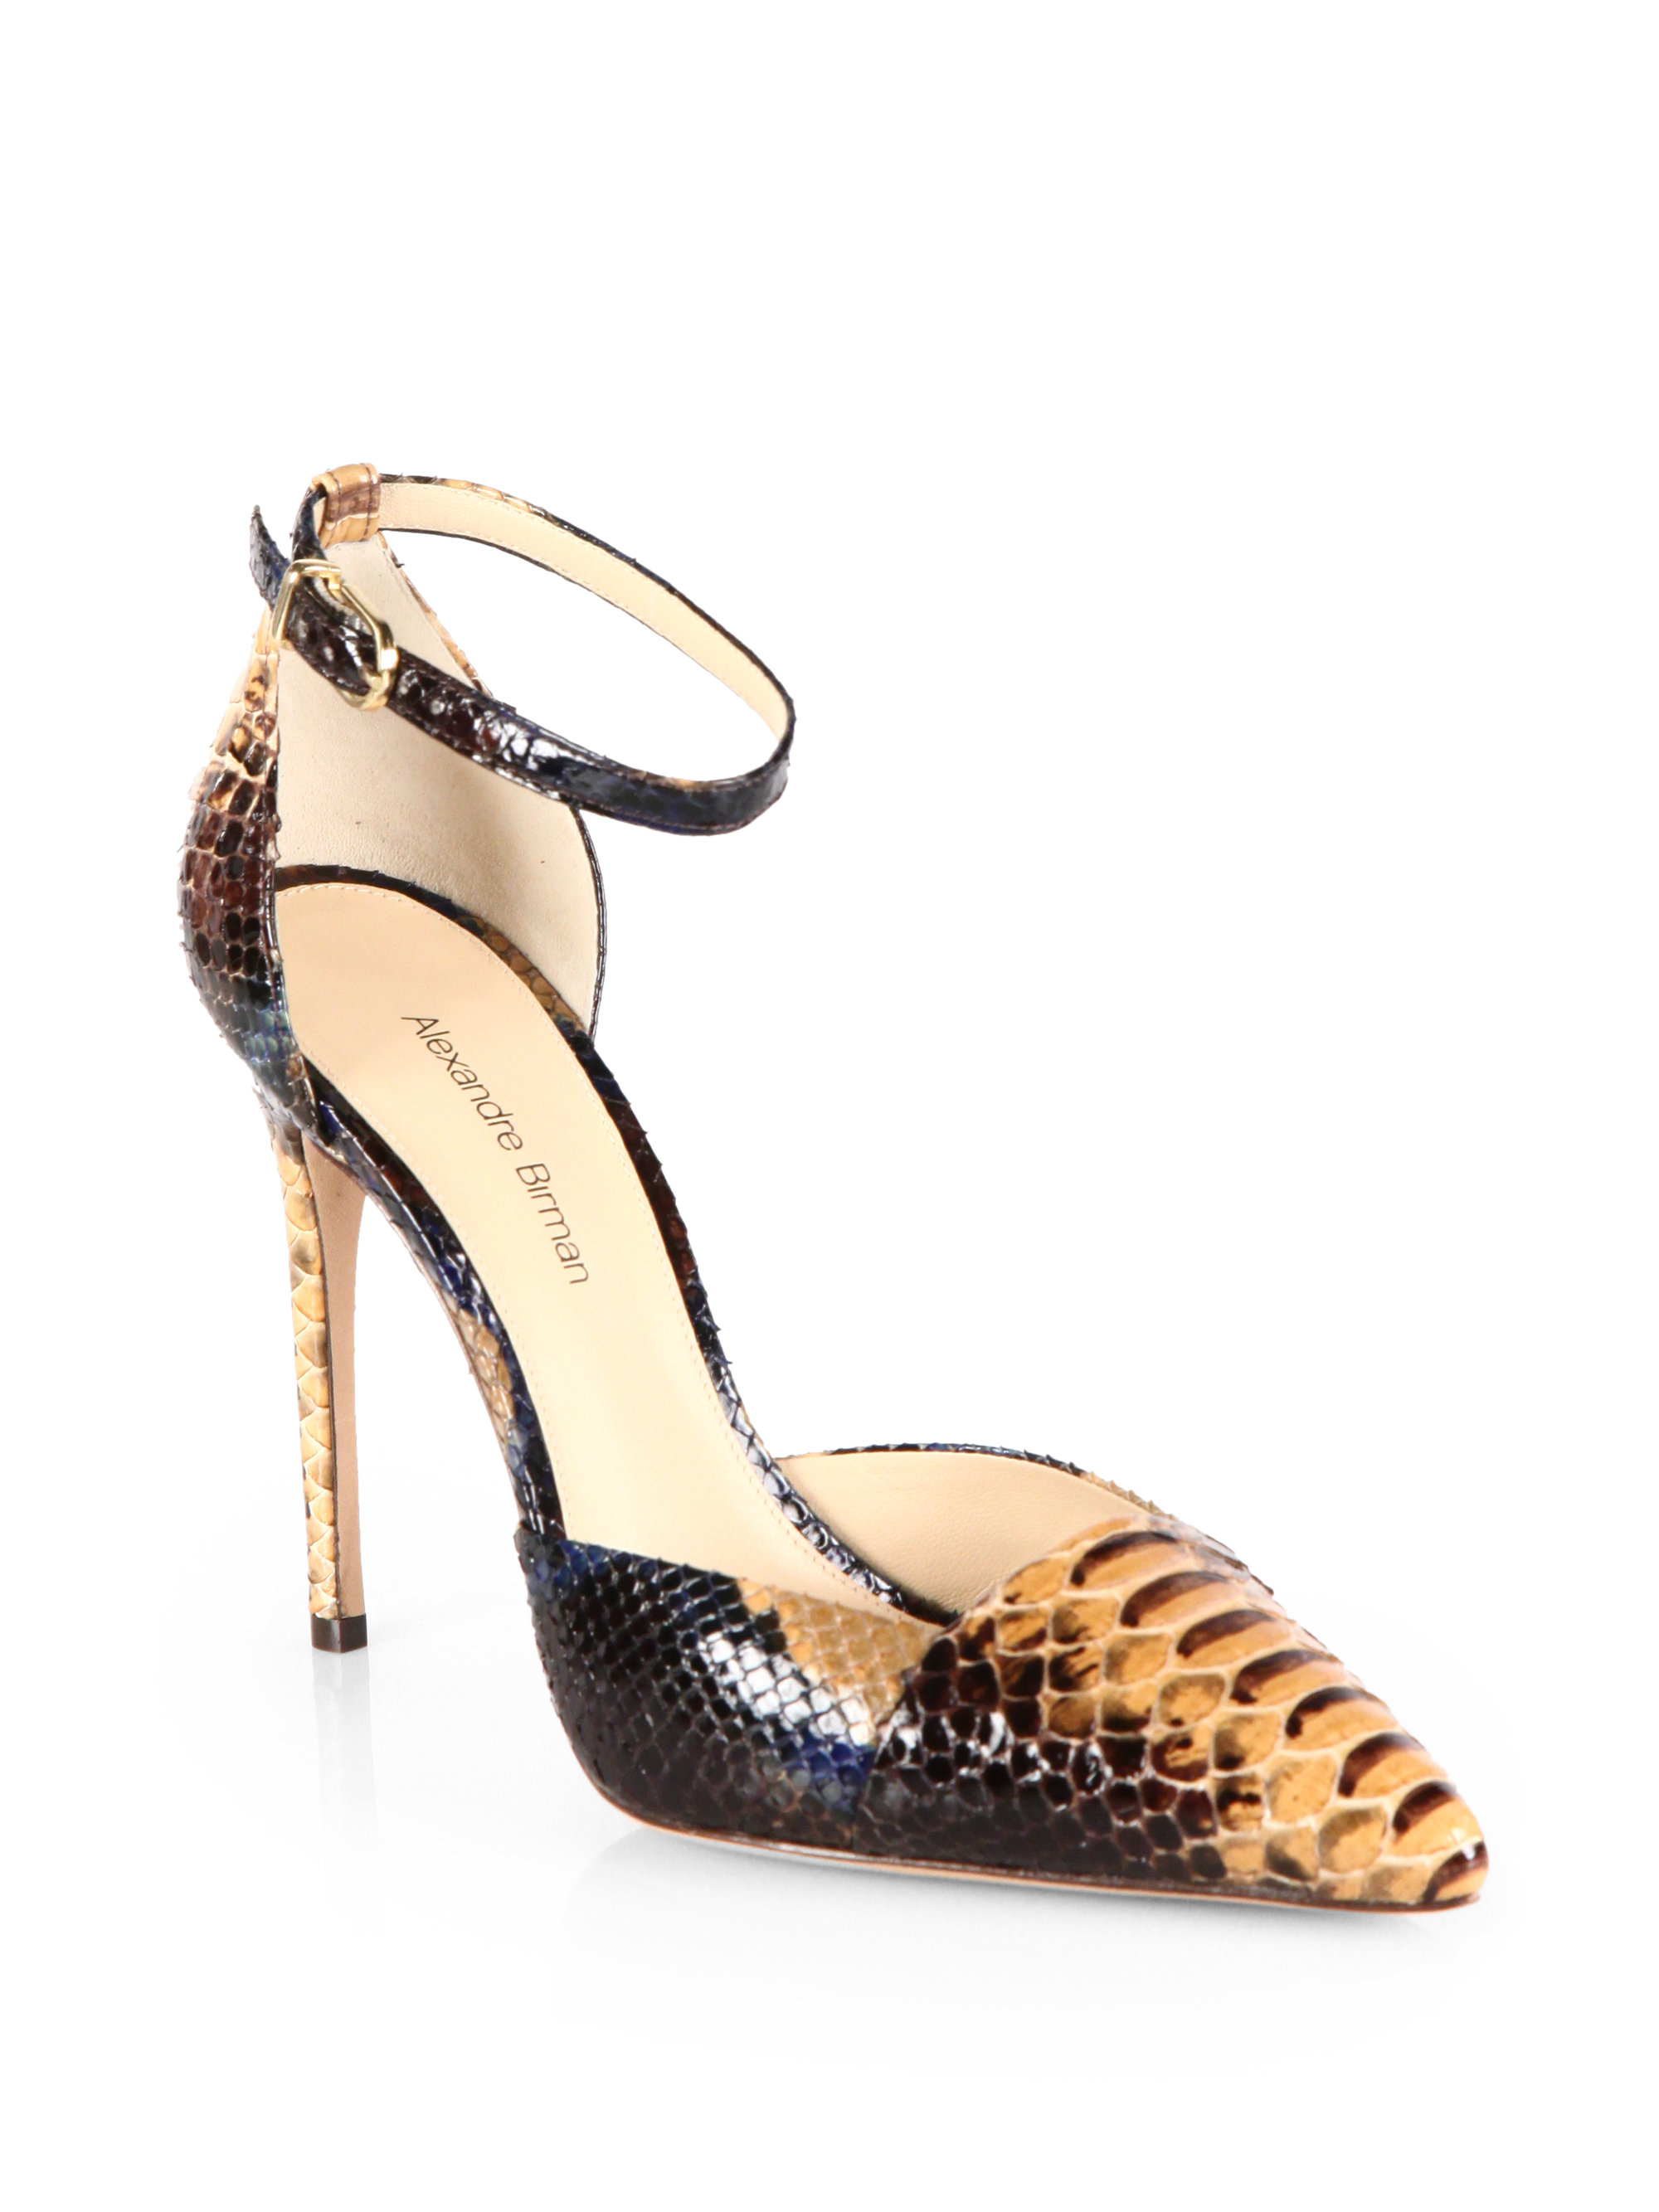 a4196e5e7d4 Lyst - Alexandre Birman Python Ankle Strap Pumps in Brown